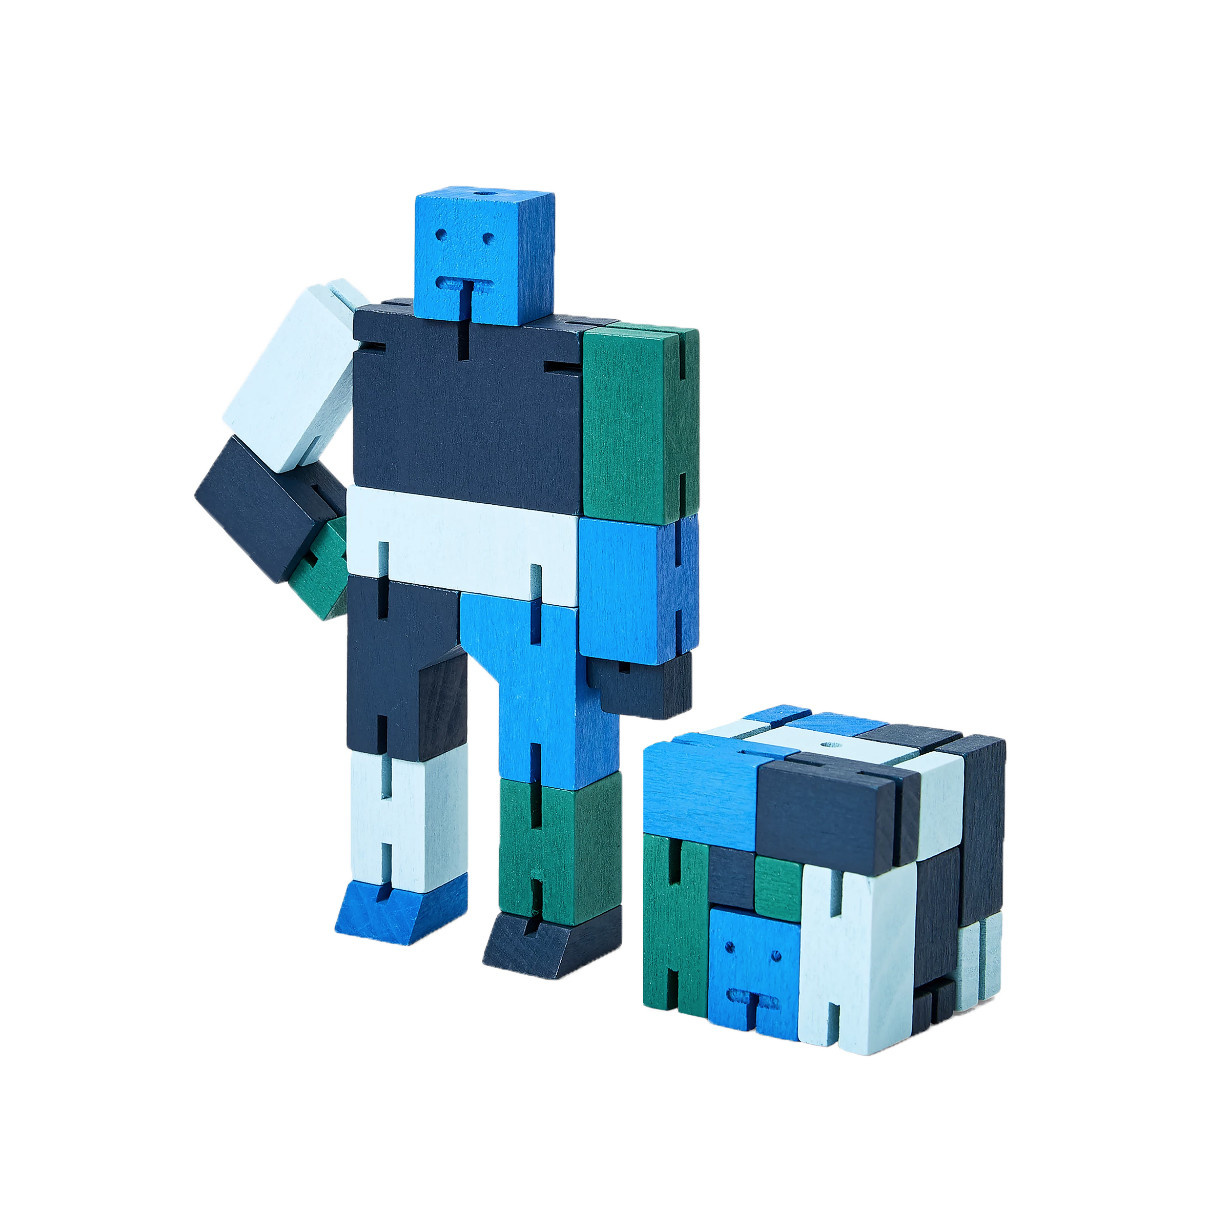 Cubebot Capsule Small - Blue Multi